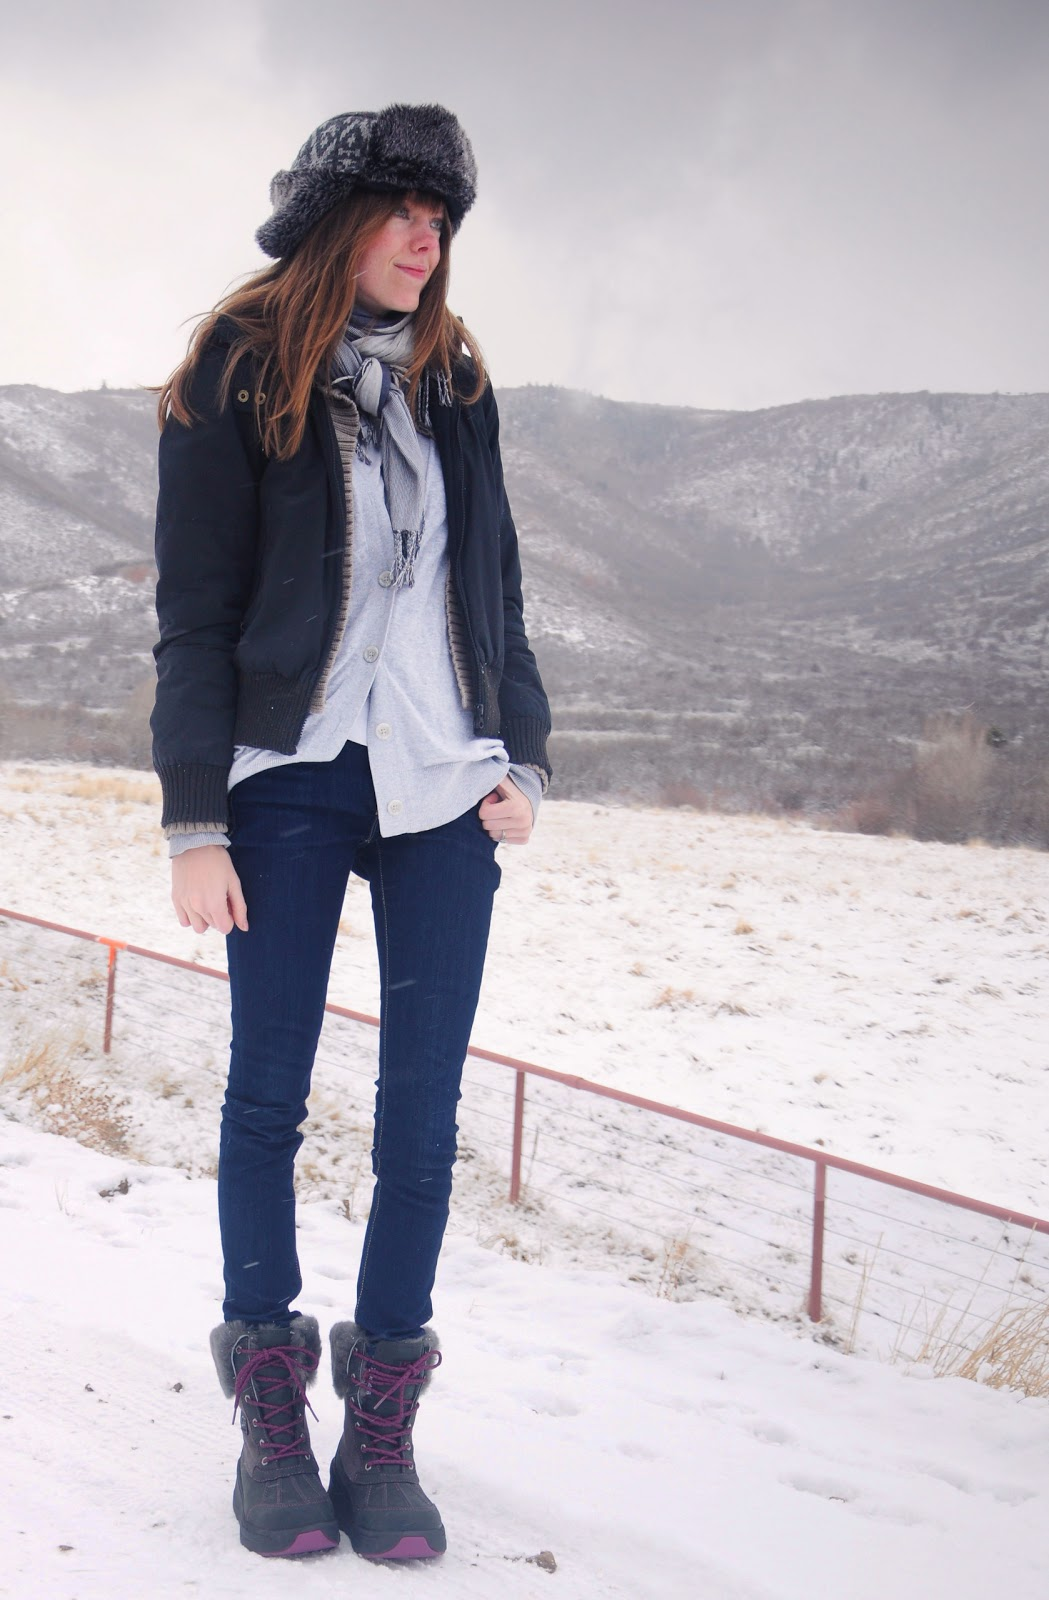 Winter hiking fashion; UGG snow boots